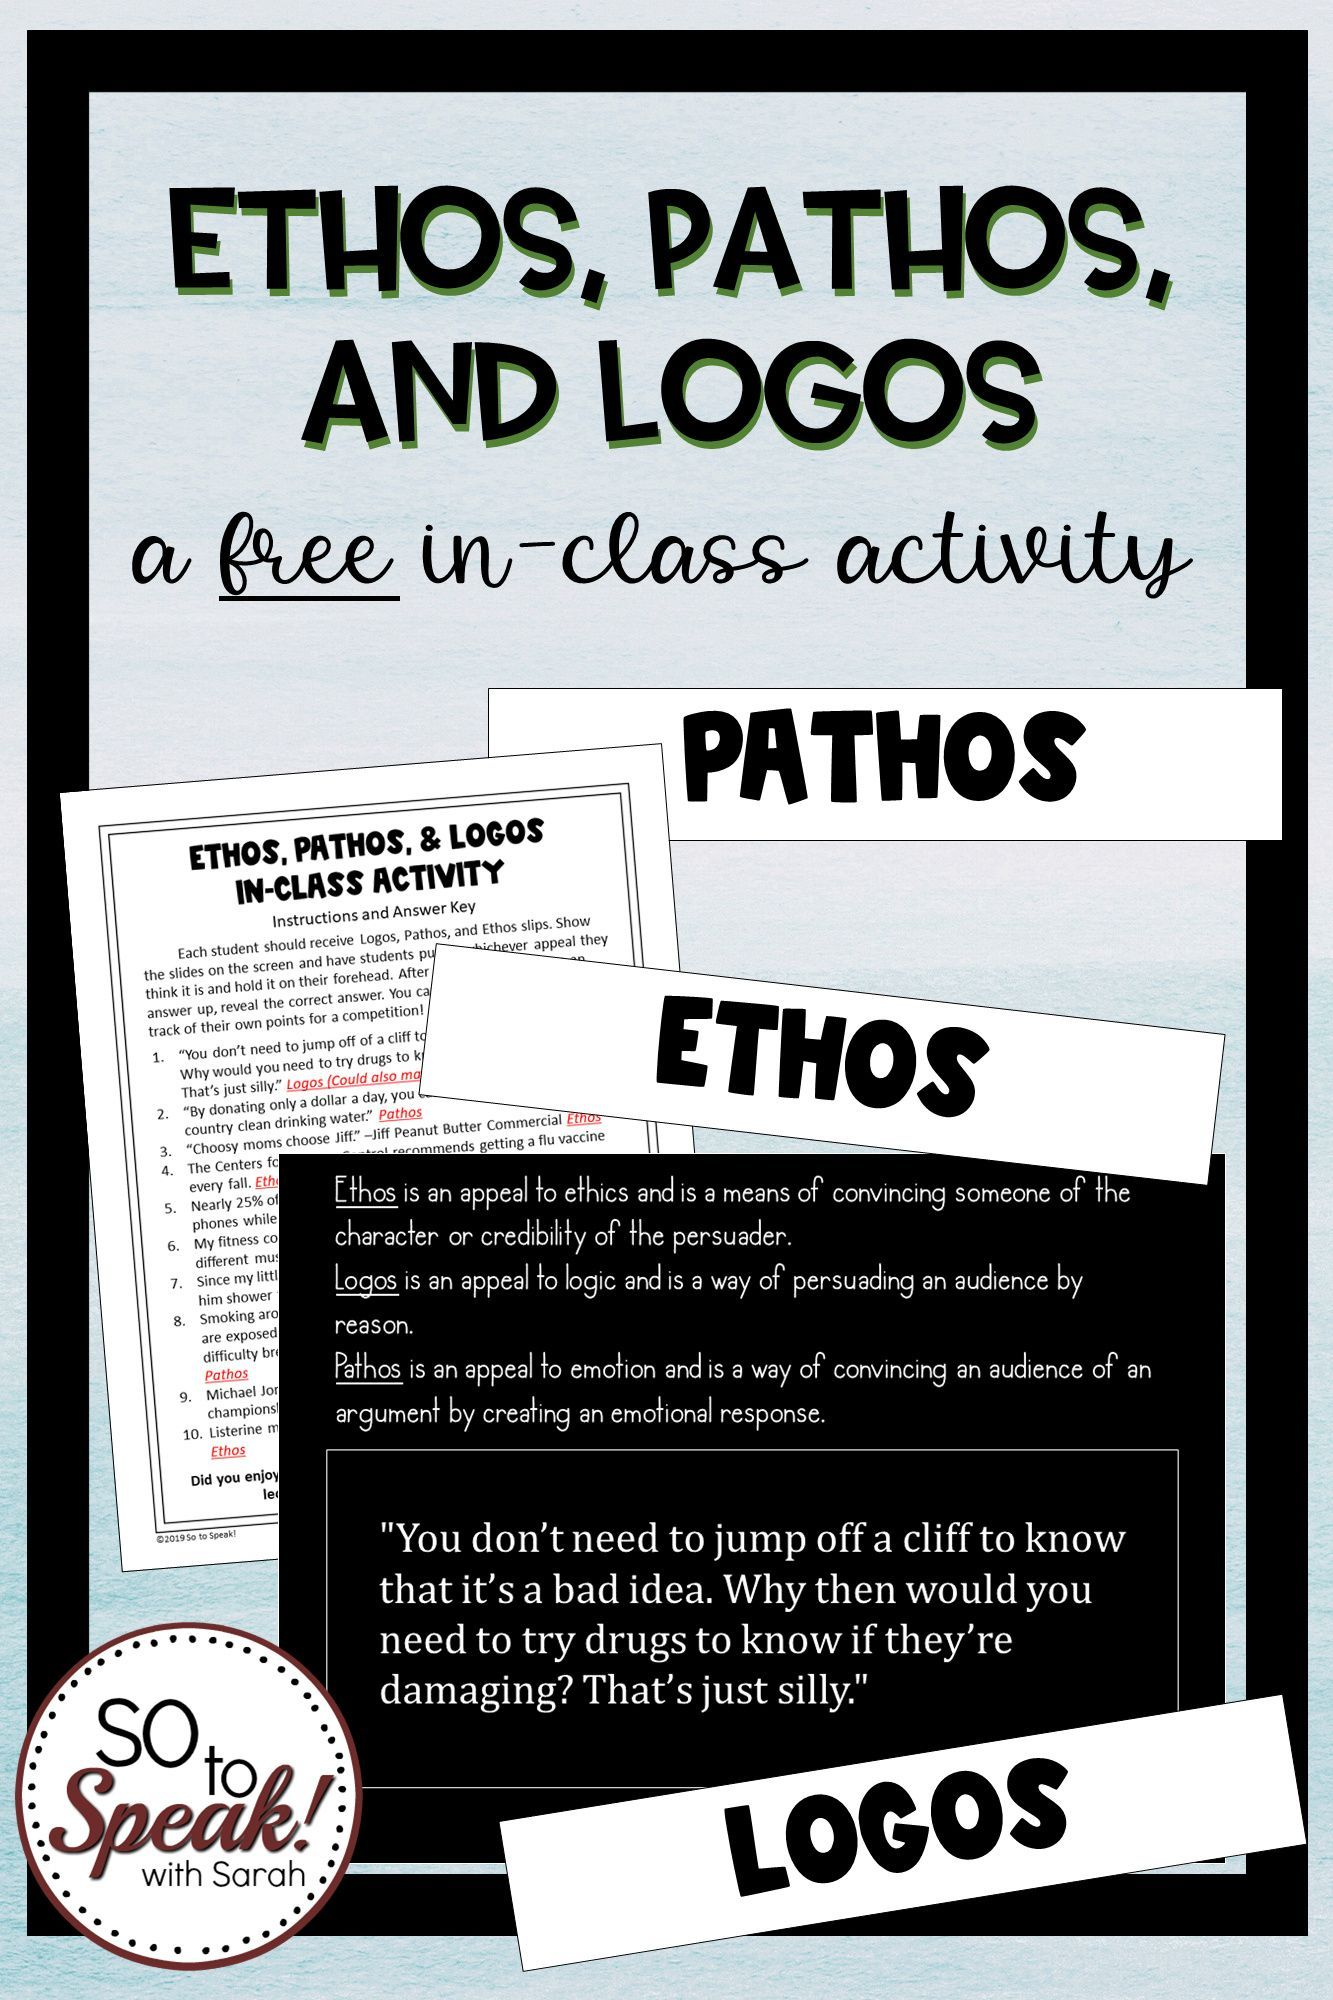 Ethos Pathos And Logos In Class Activity Freebie Class Activities Ethos Pathos Logos Rhetoric